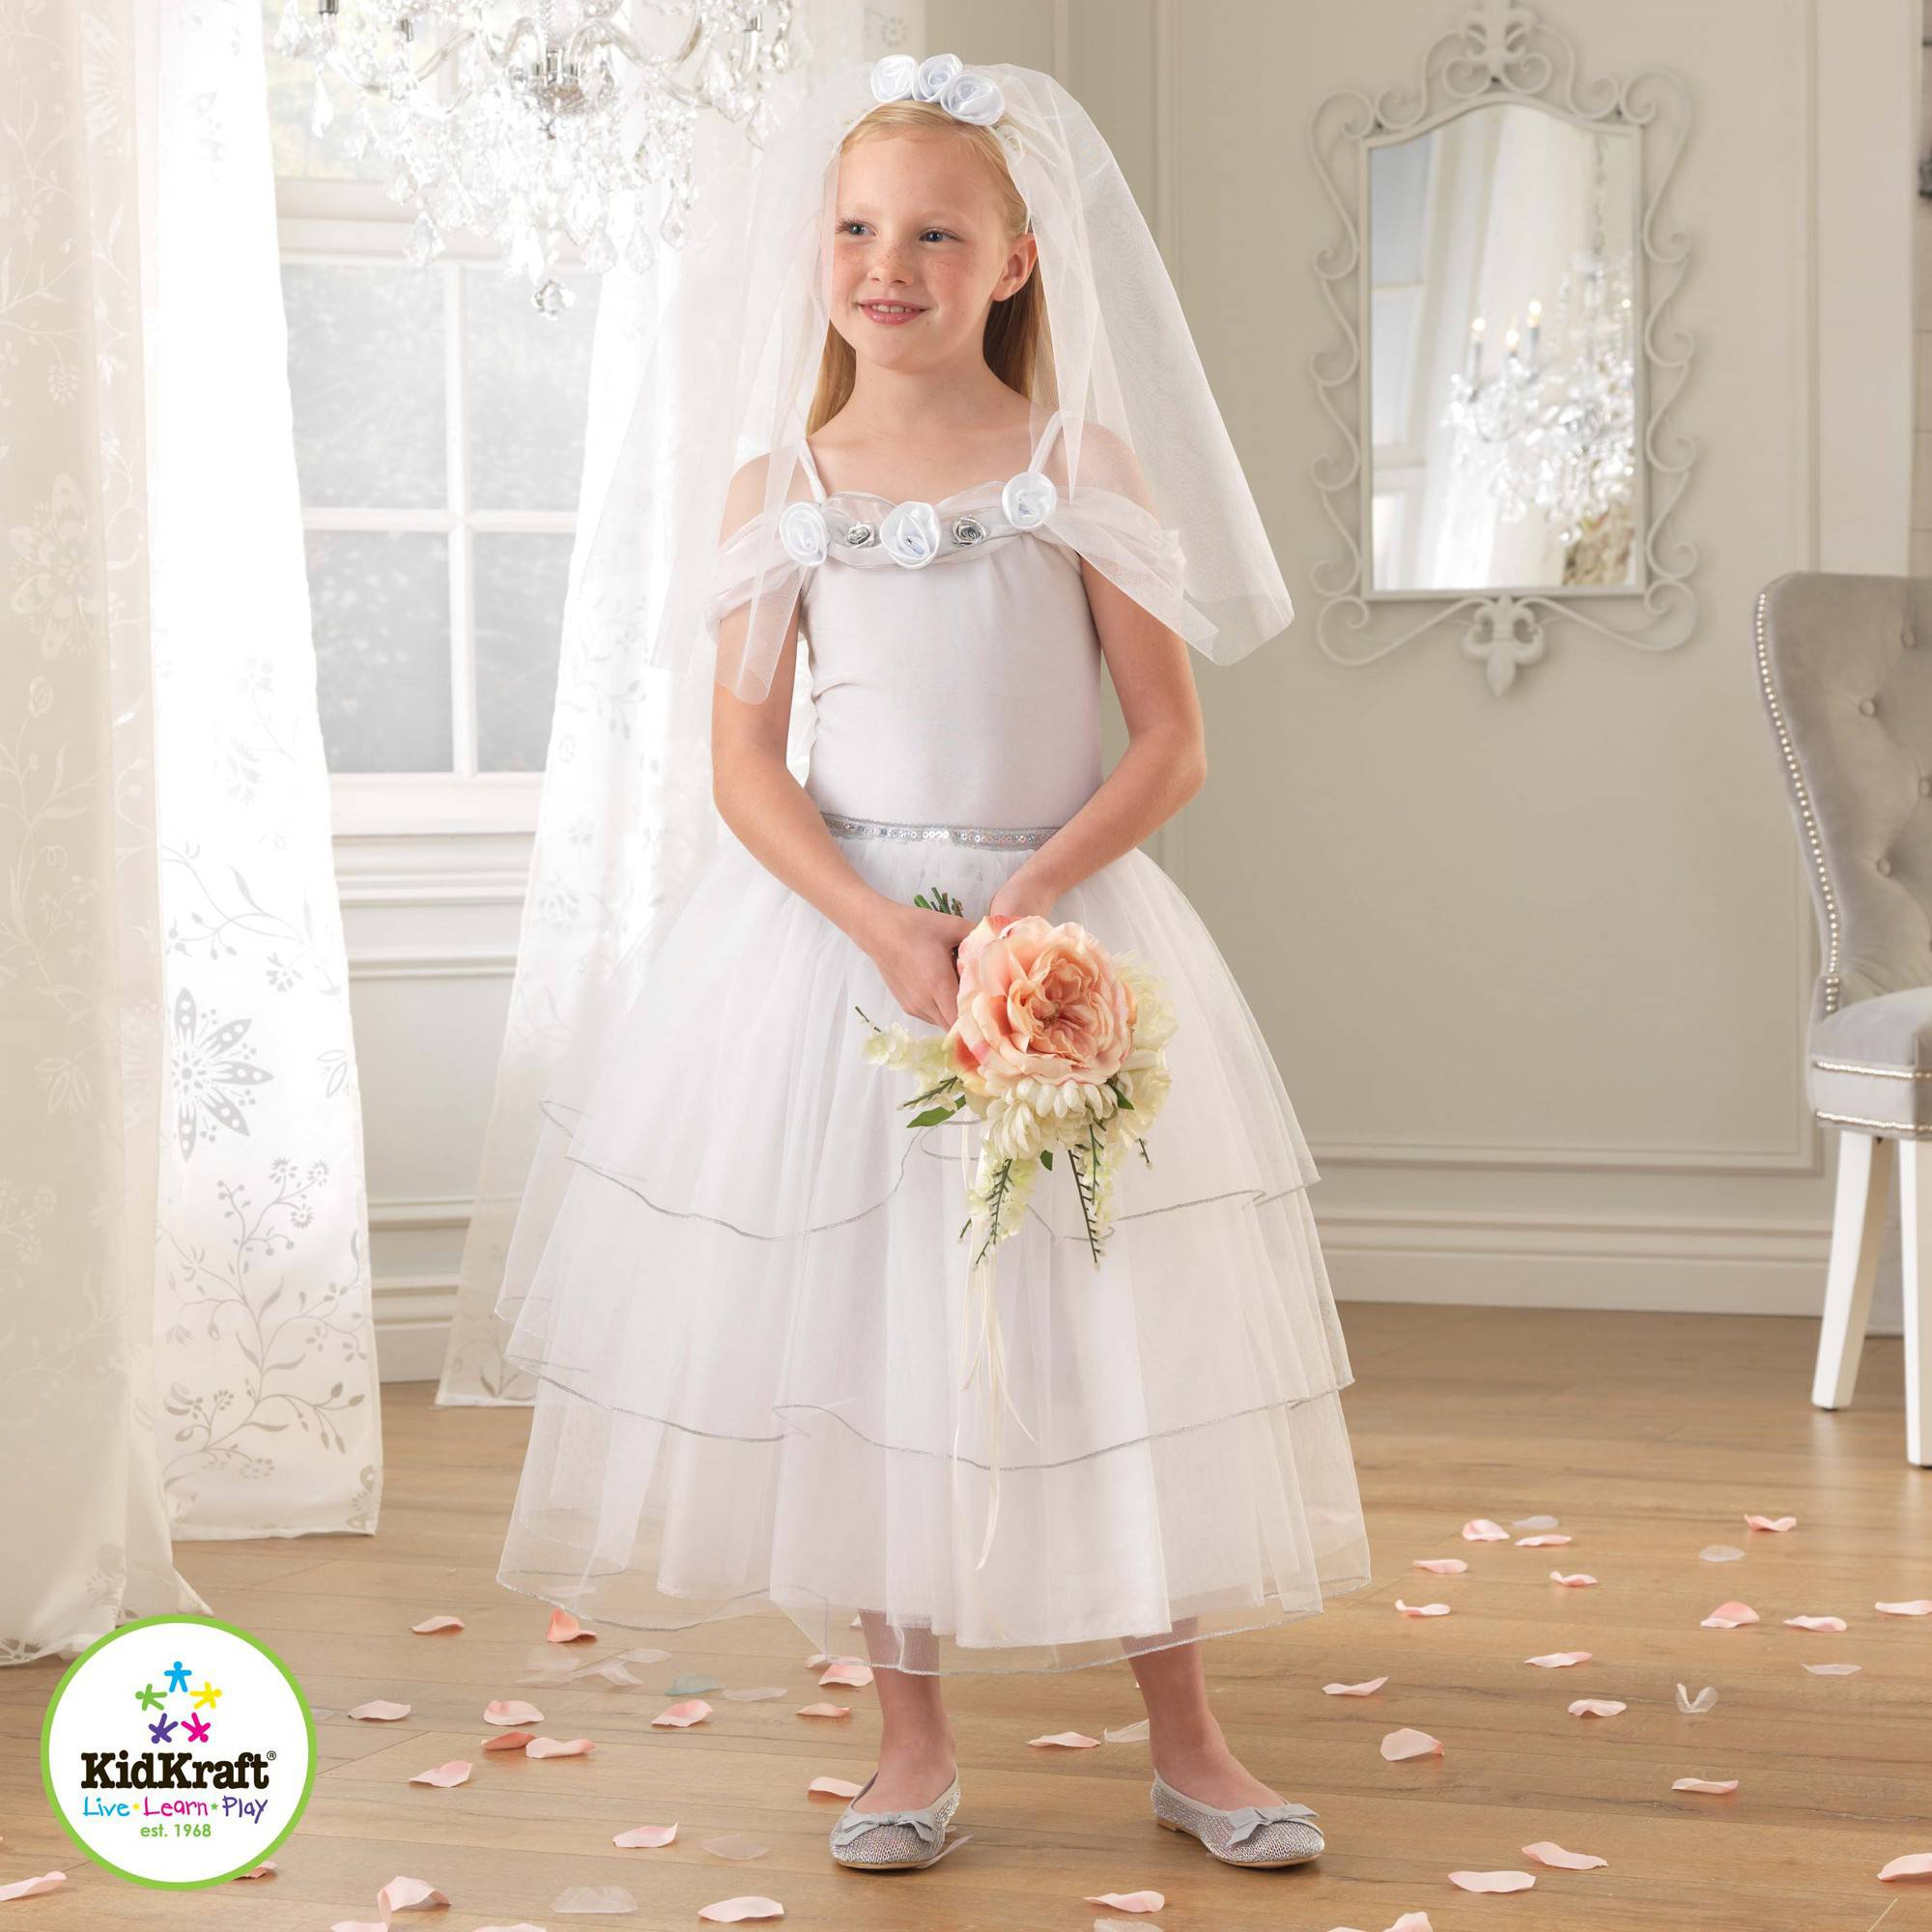 KidKraft White Rose Bride Dress Up Costume Dress Up Costume